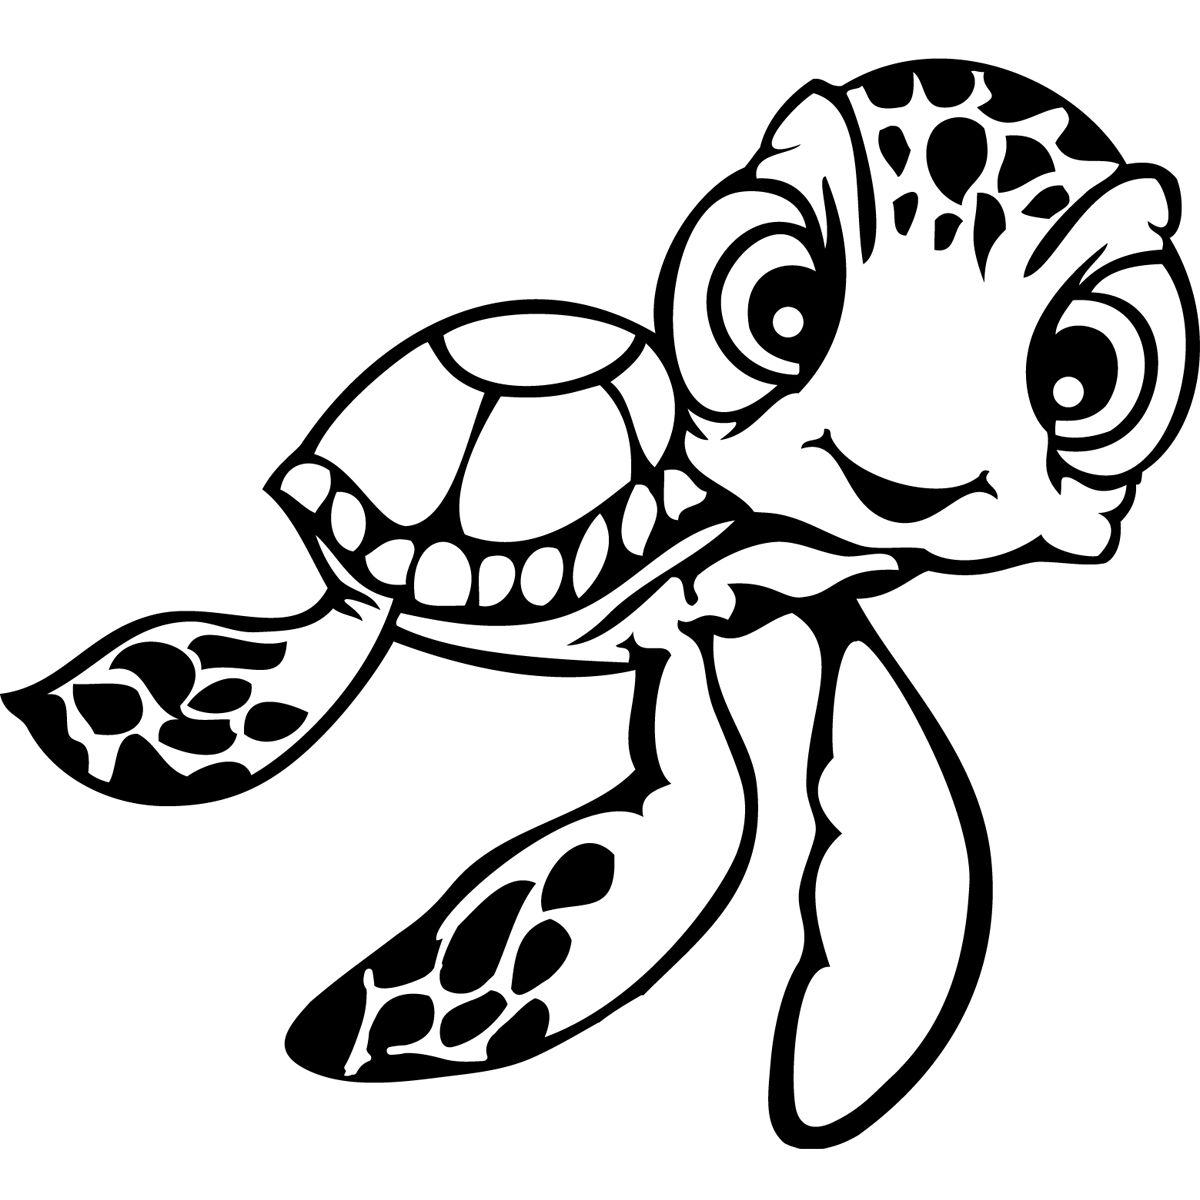 VECTOR* Finding Nemo Coloring Pages - Bing Images | Nemo | Pinterest ...